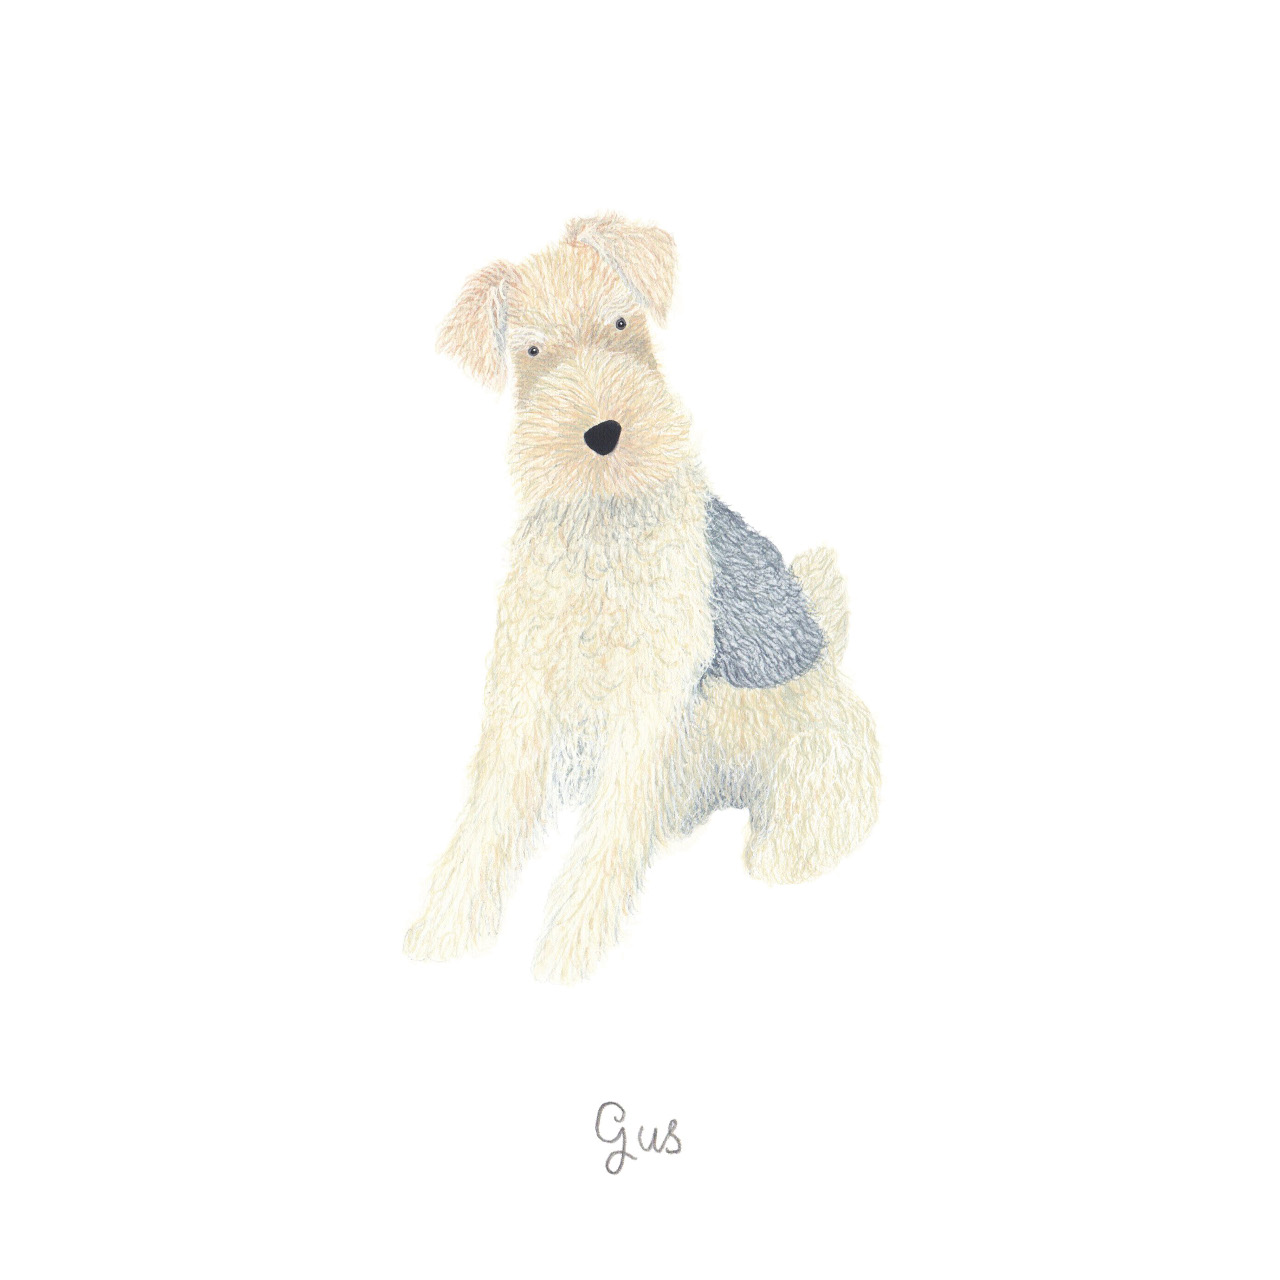 Illustrated Pet Portraits by Louise Jewell